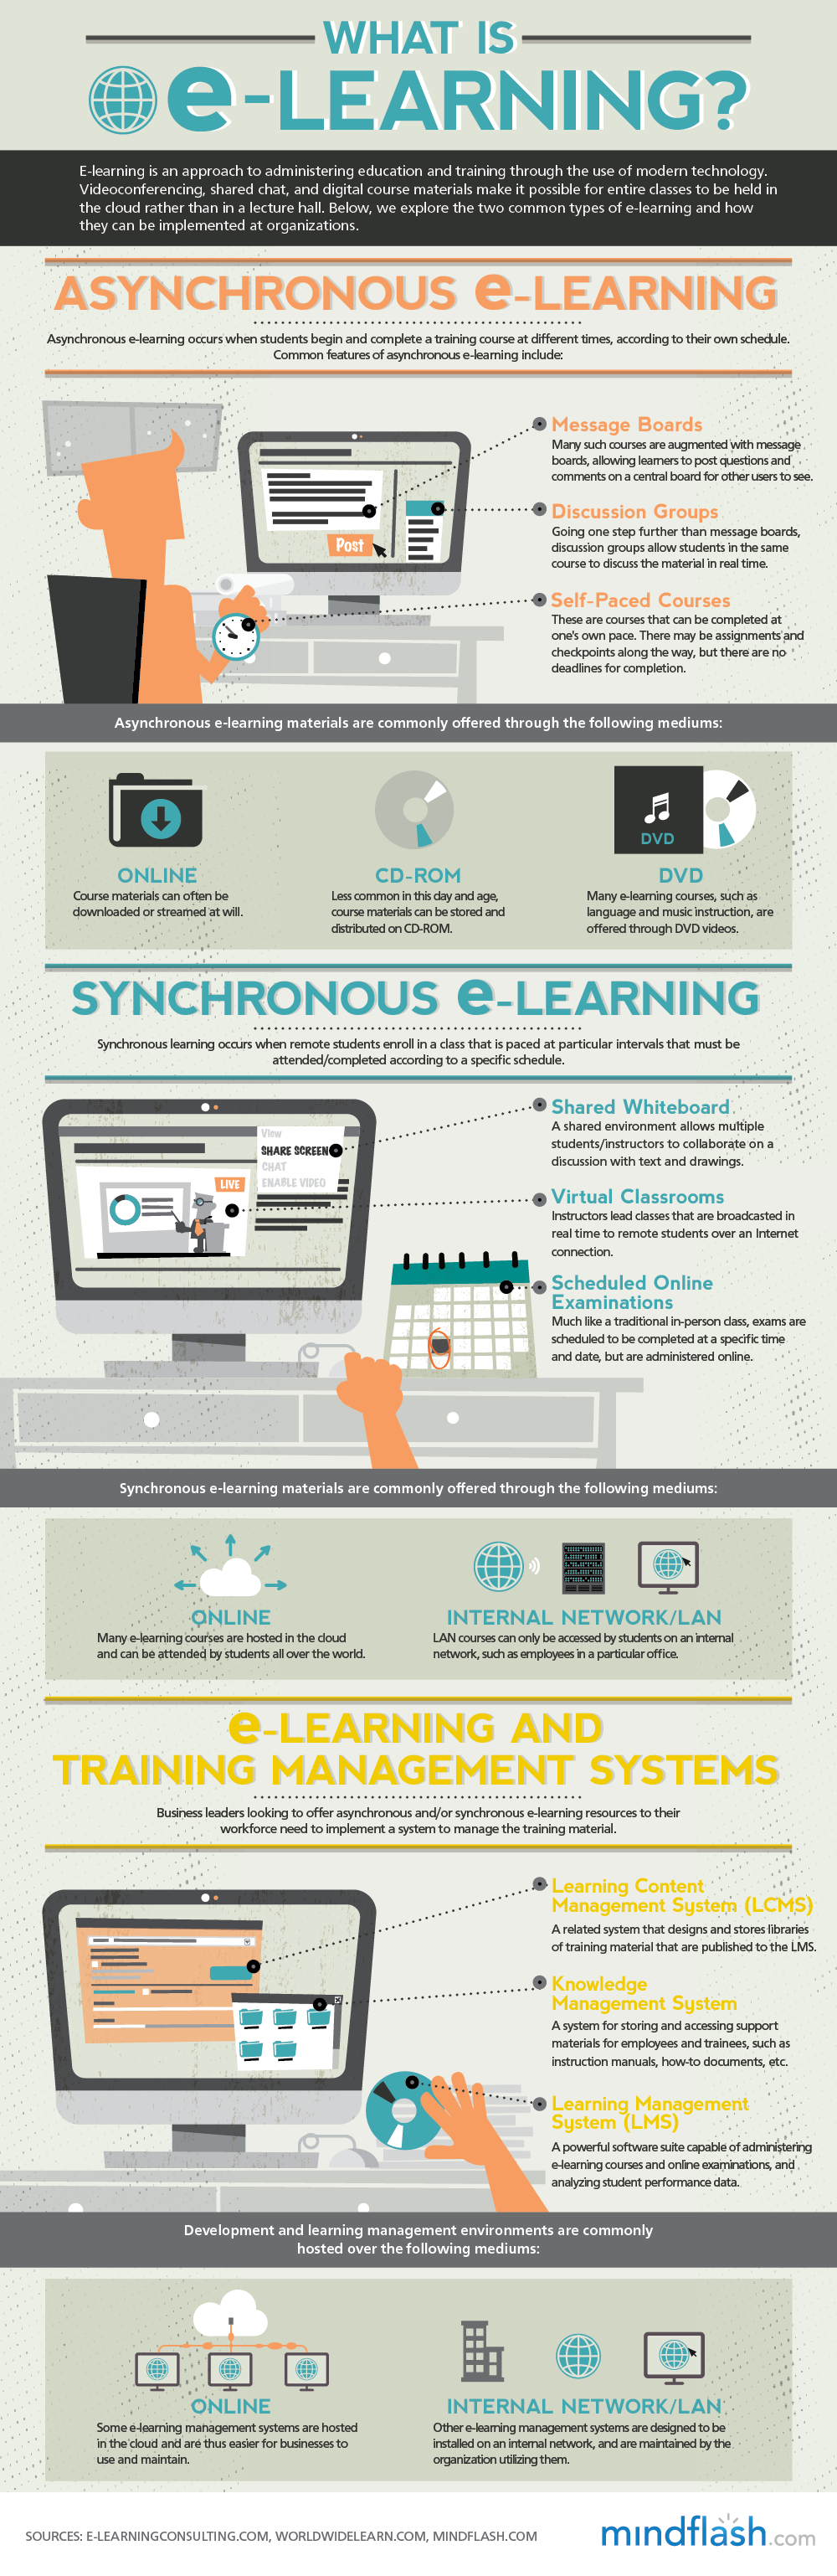 elearning visually explained